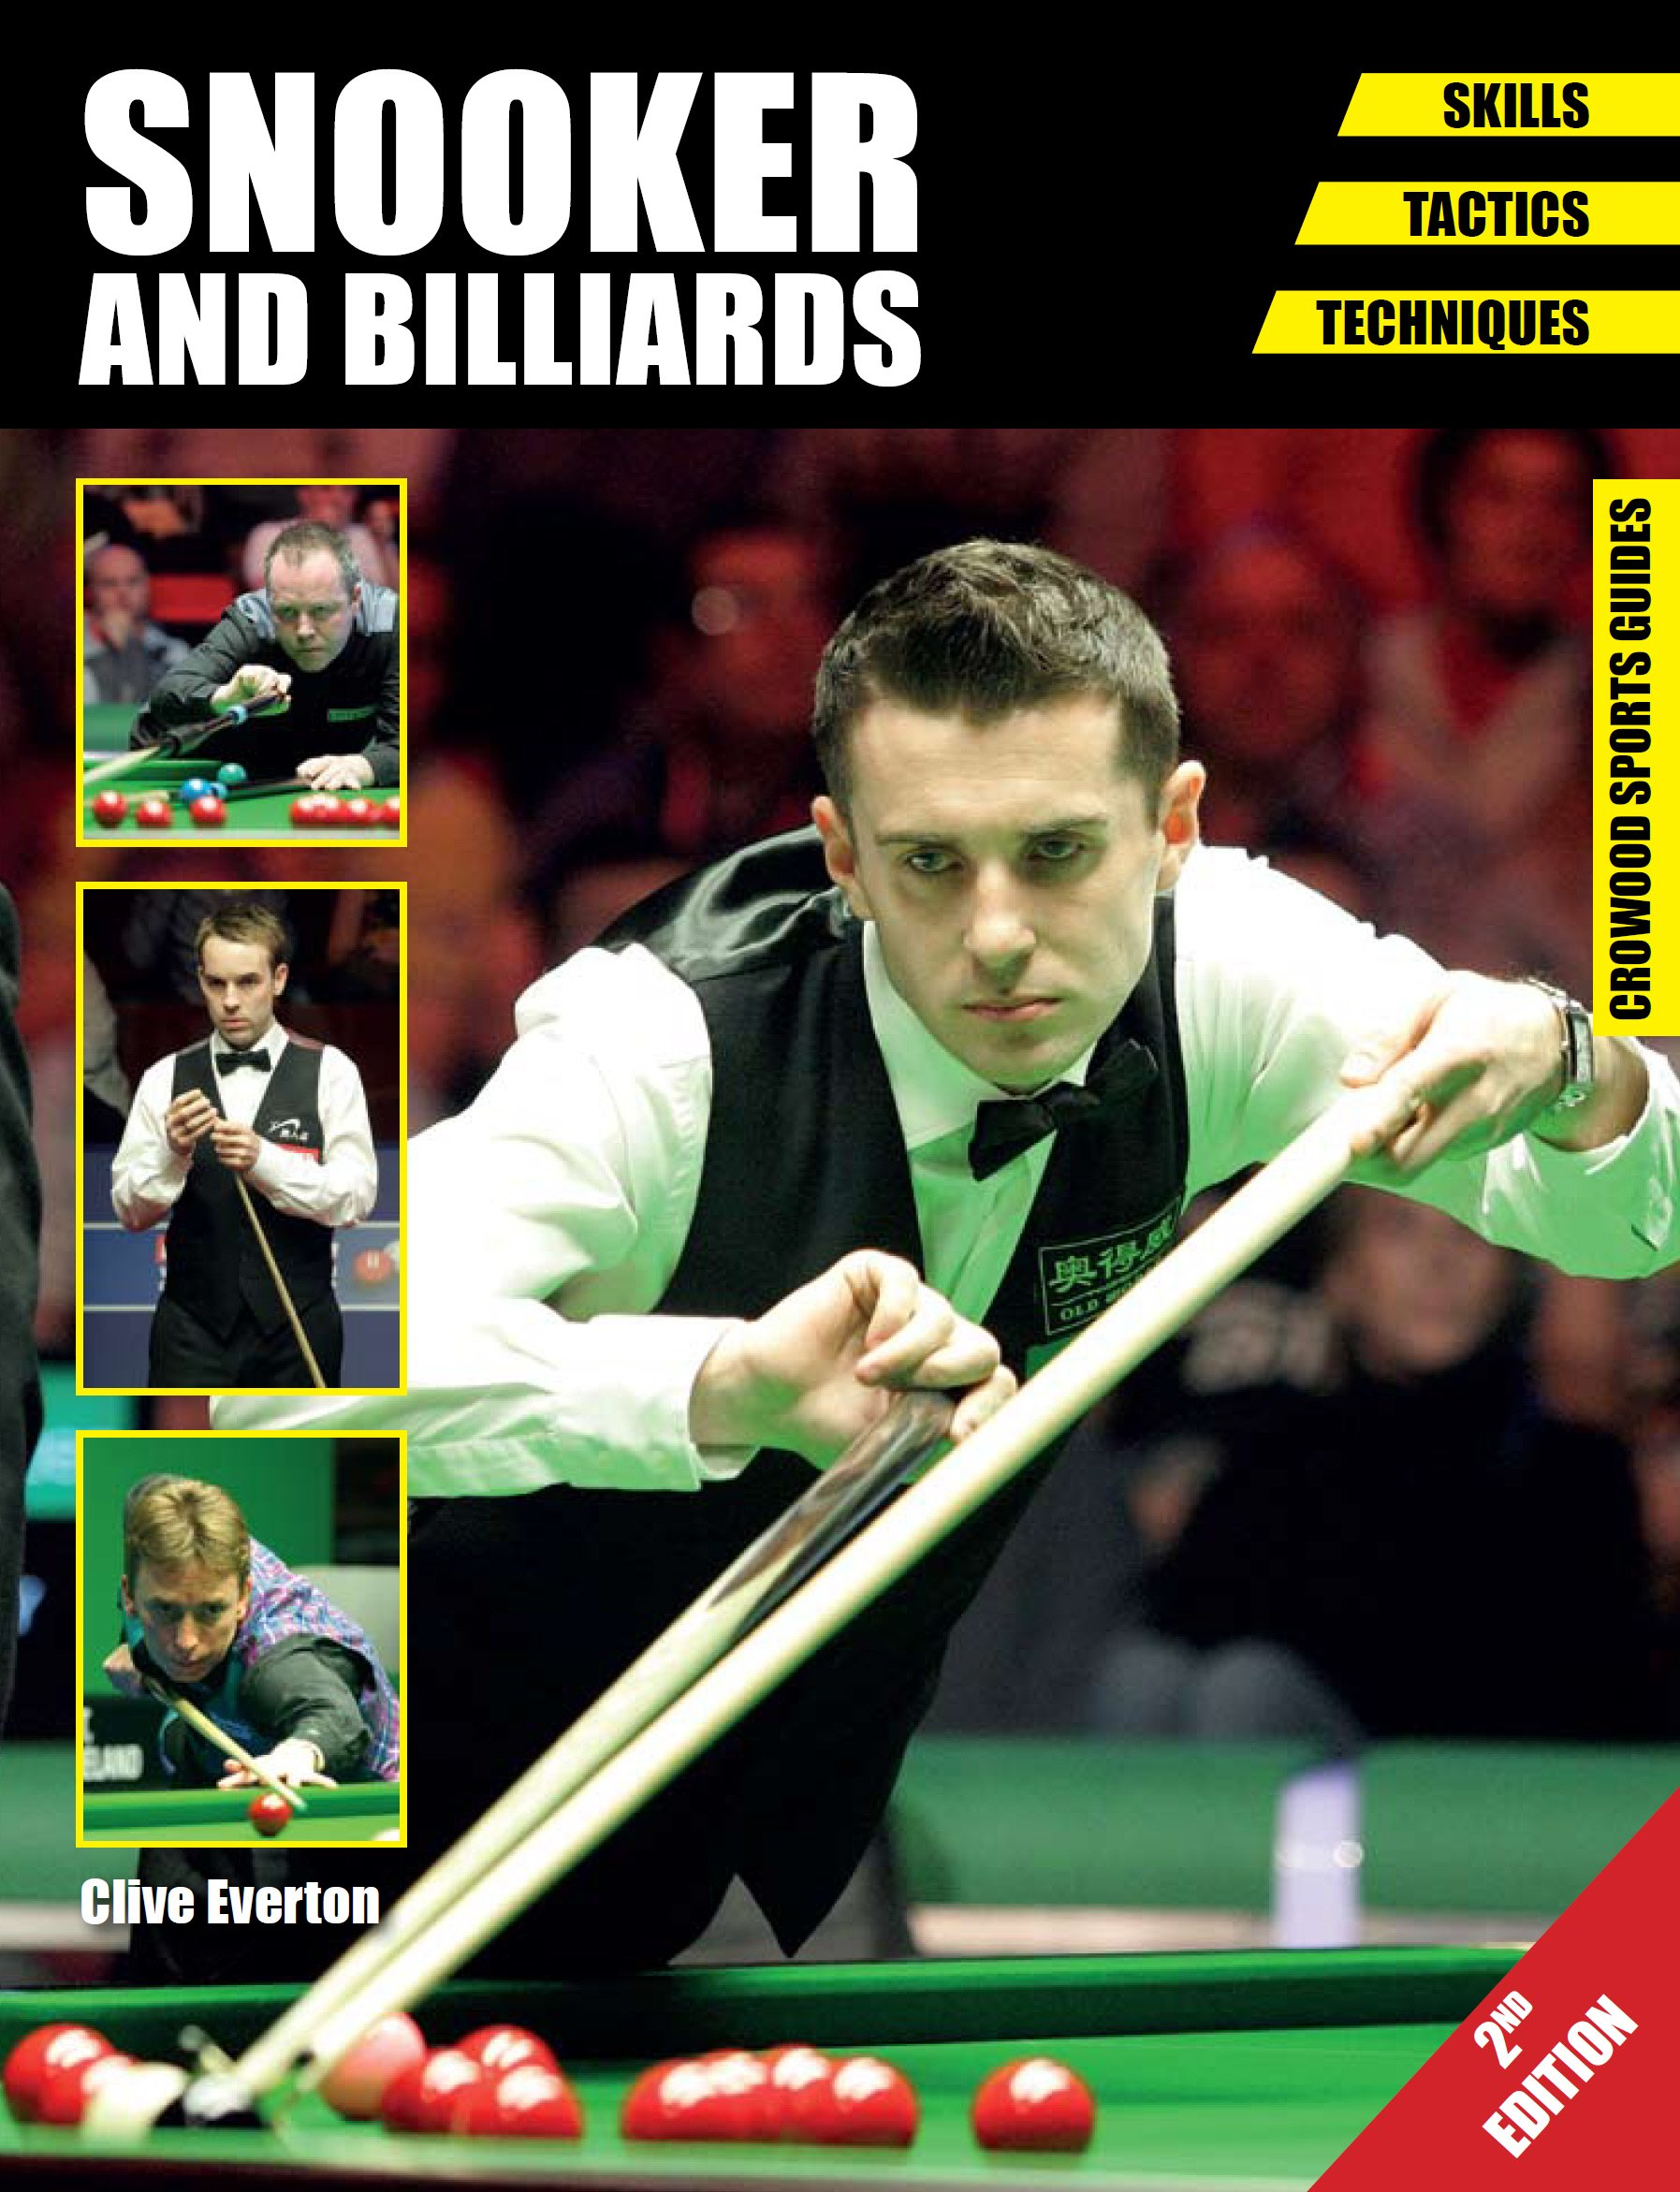 Image OfSnooker And Billiards: Skills - Tactics - Techniques - Second Edition (Crowood Sports Guides) (English Edition)